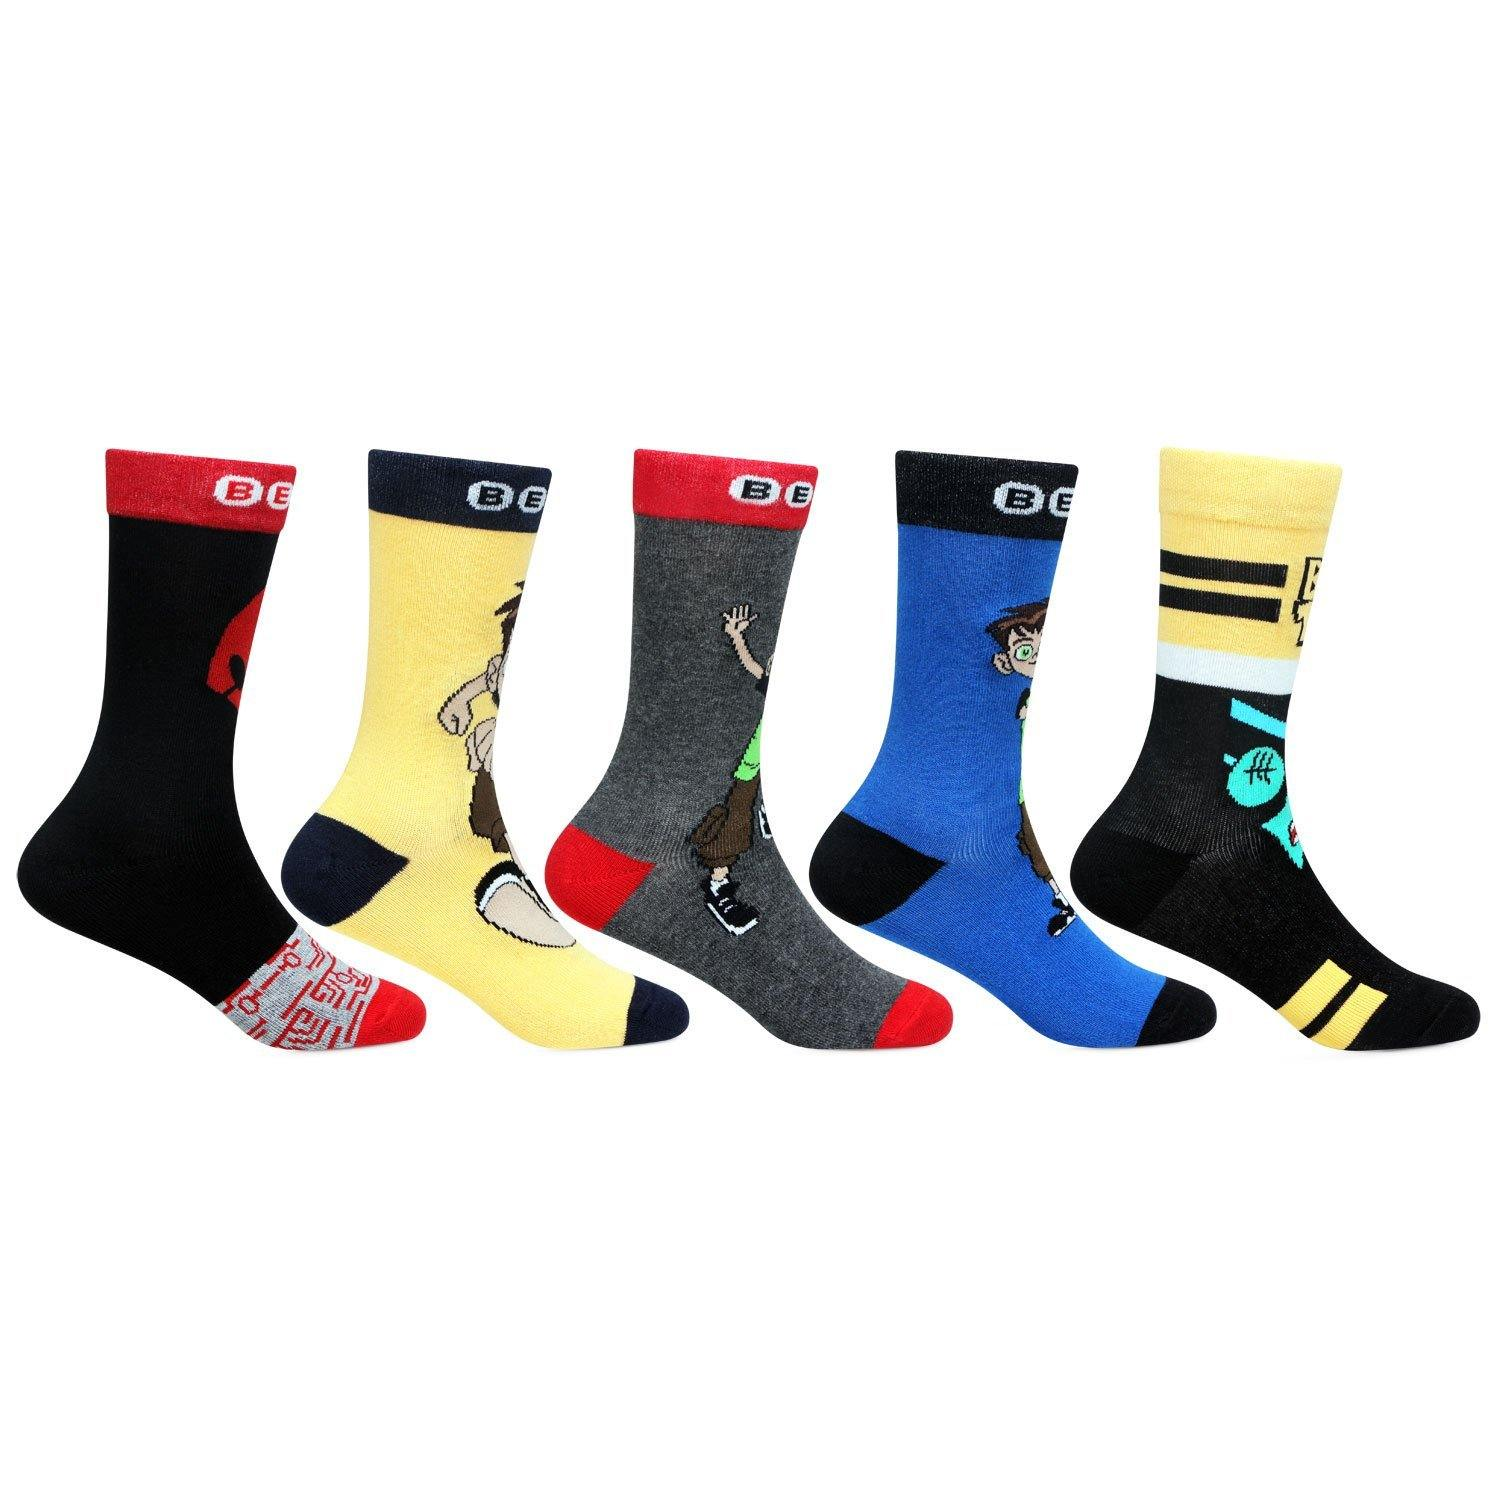 Ben 10 Multicolored Crew Socks For Boys- Pack Of 5